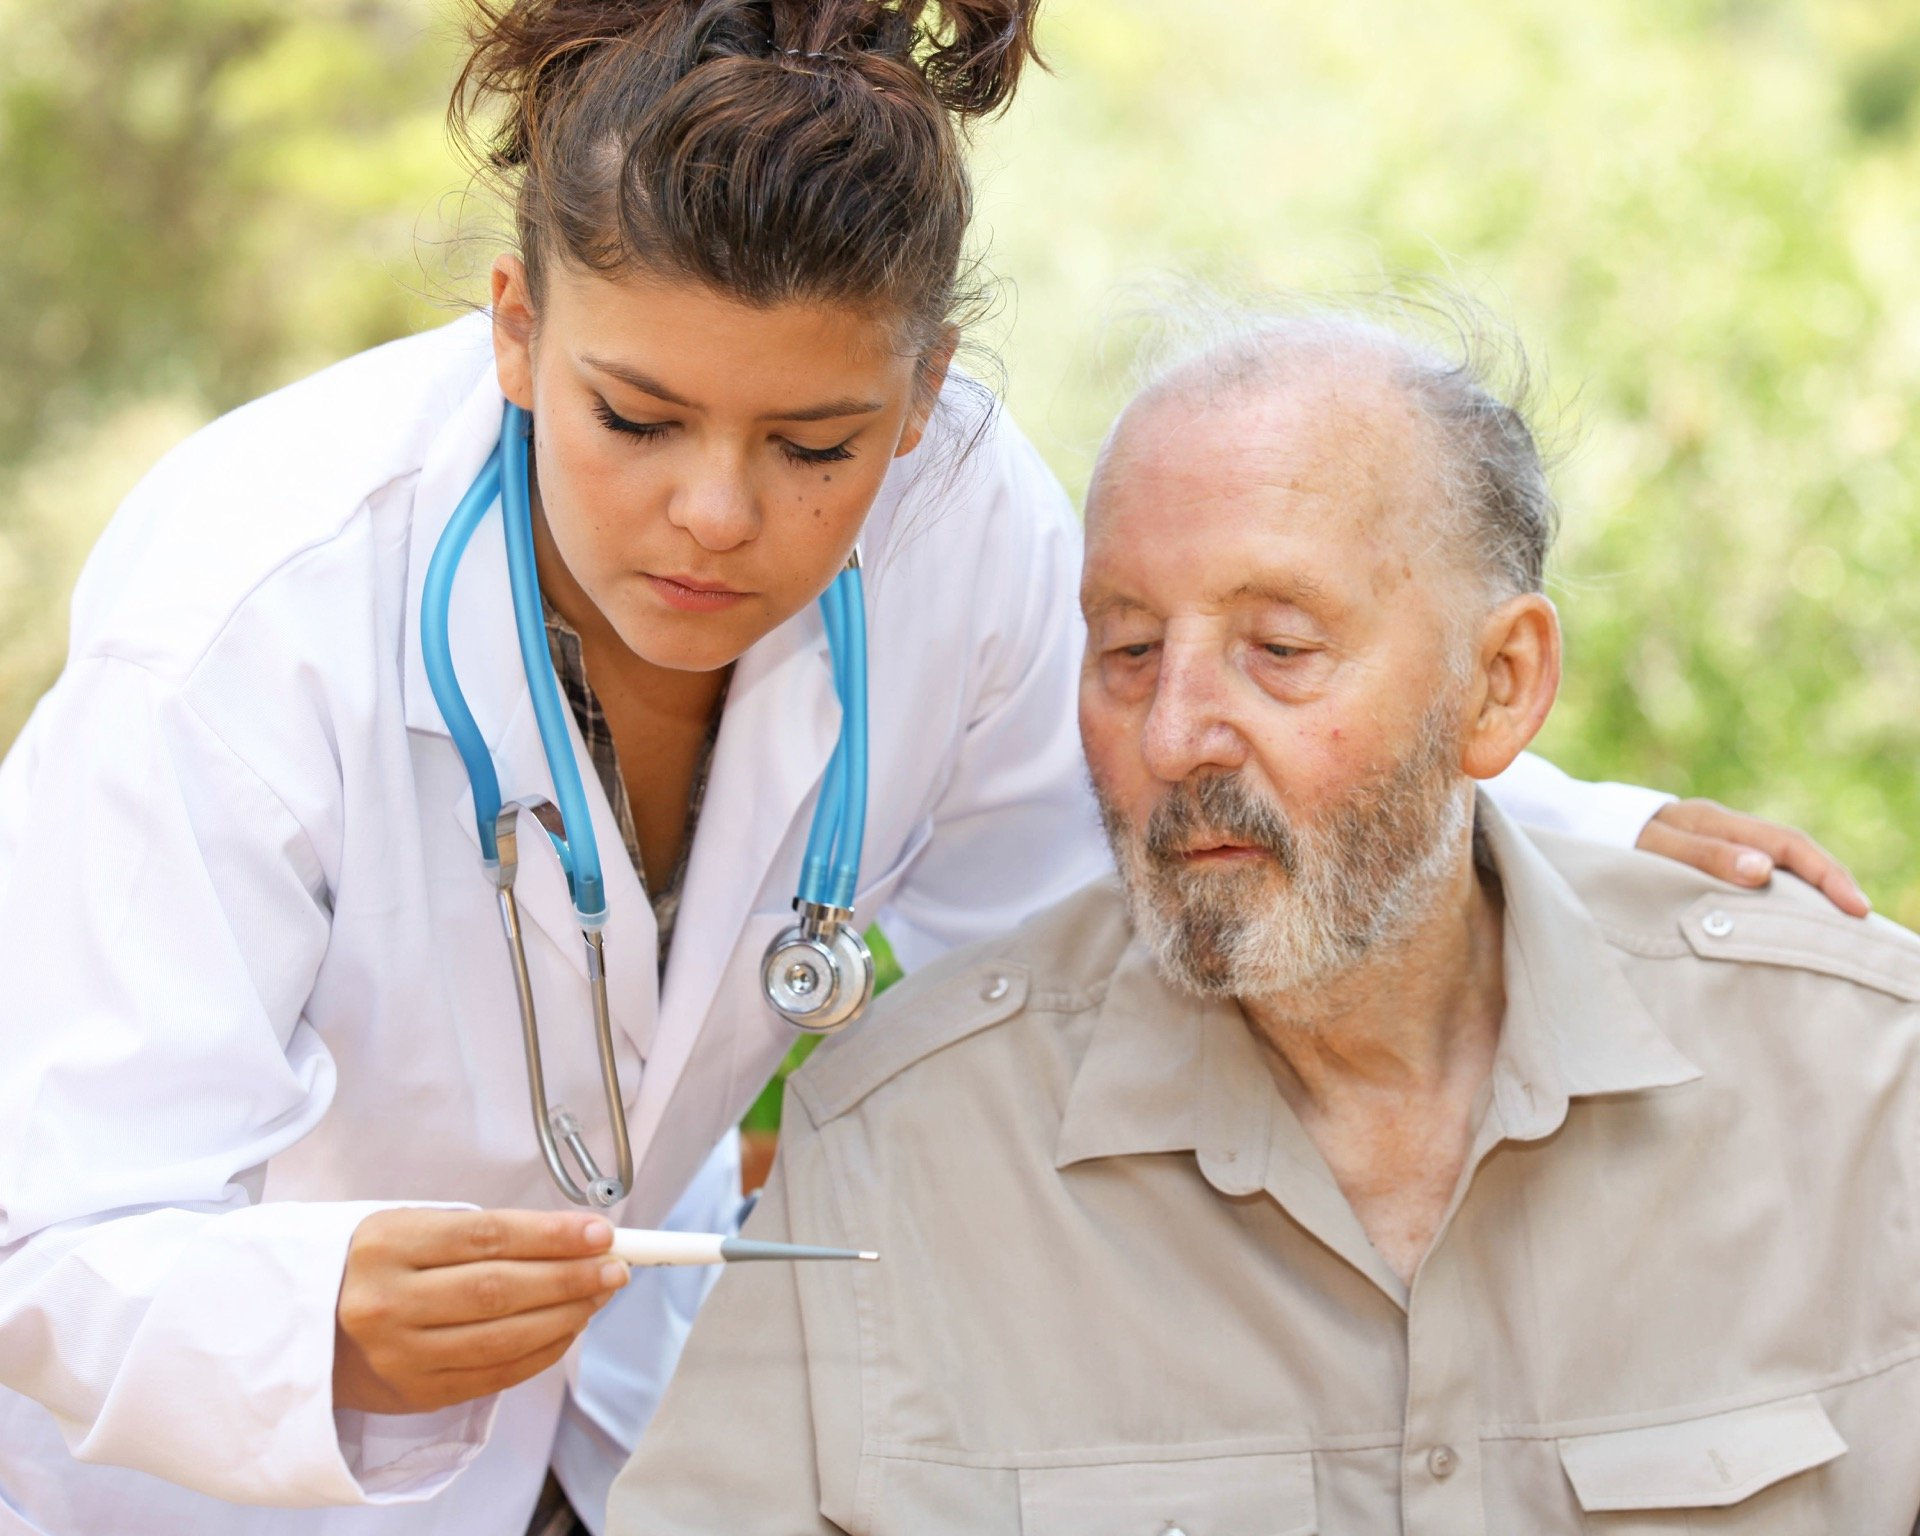 home | home care services nassau & suffolk county ny | res company